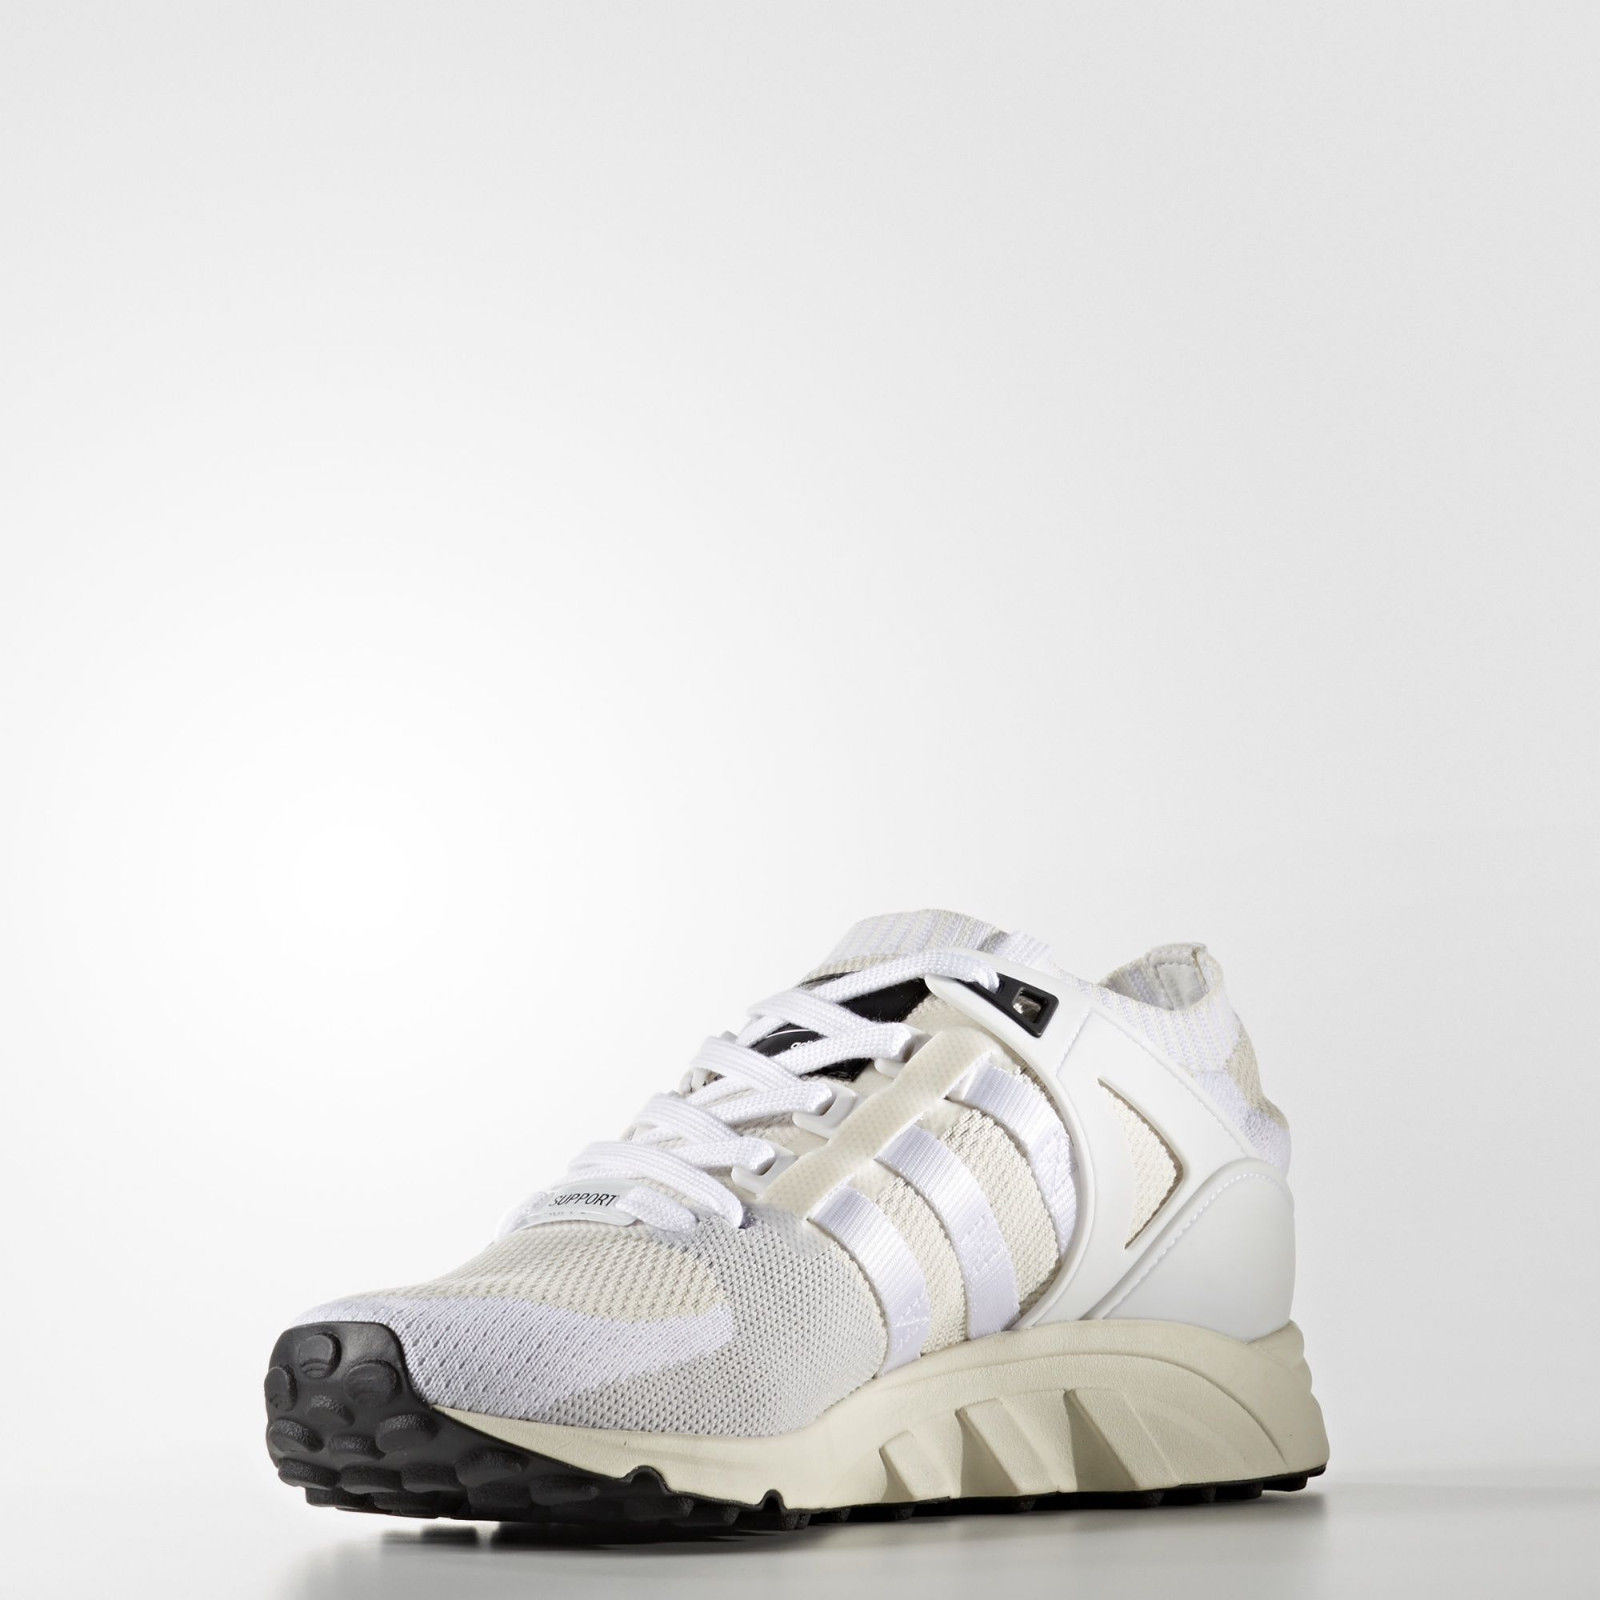 ADIDAS EQUIPMENT EQT SUPPORT RF PRIMEKNIT RUNNING SHOES WHITE NEW (BA7507)